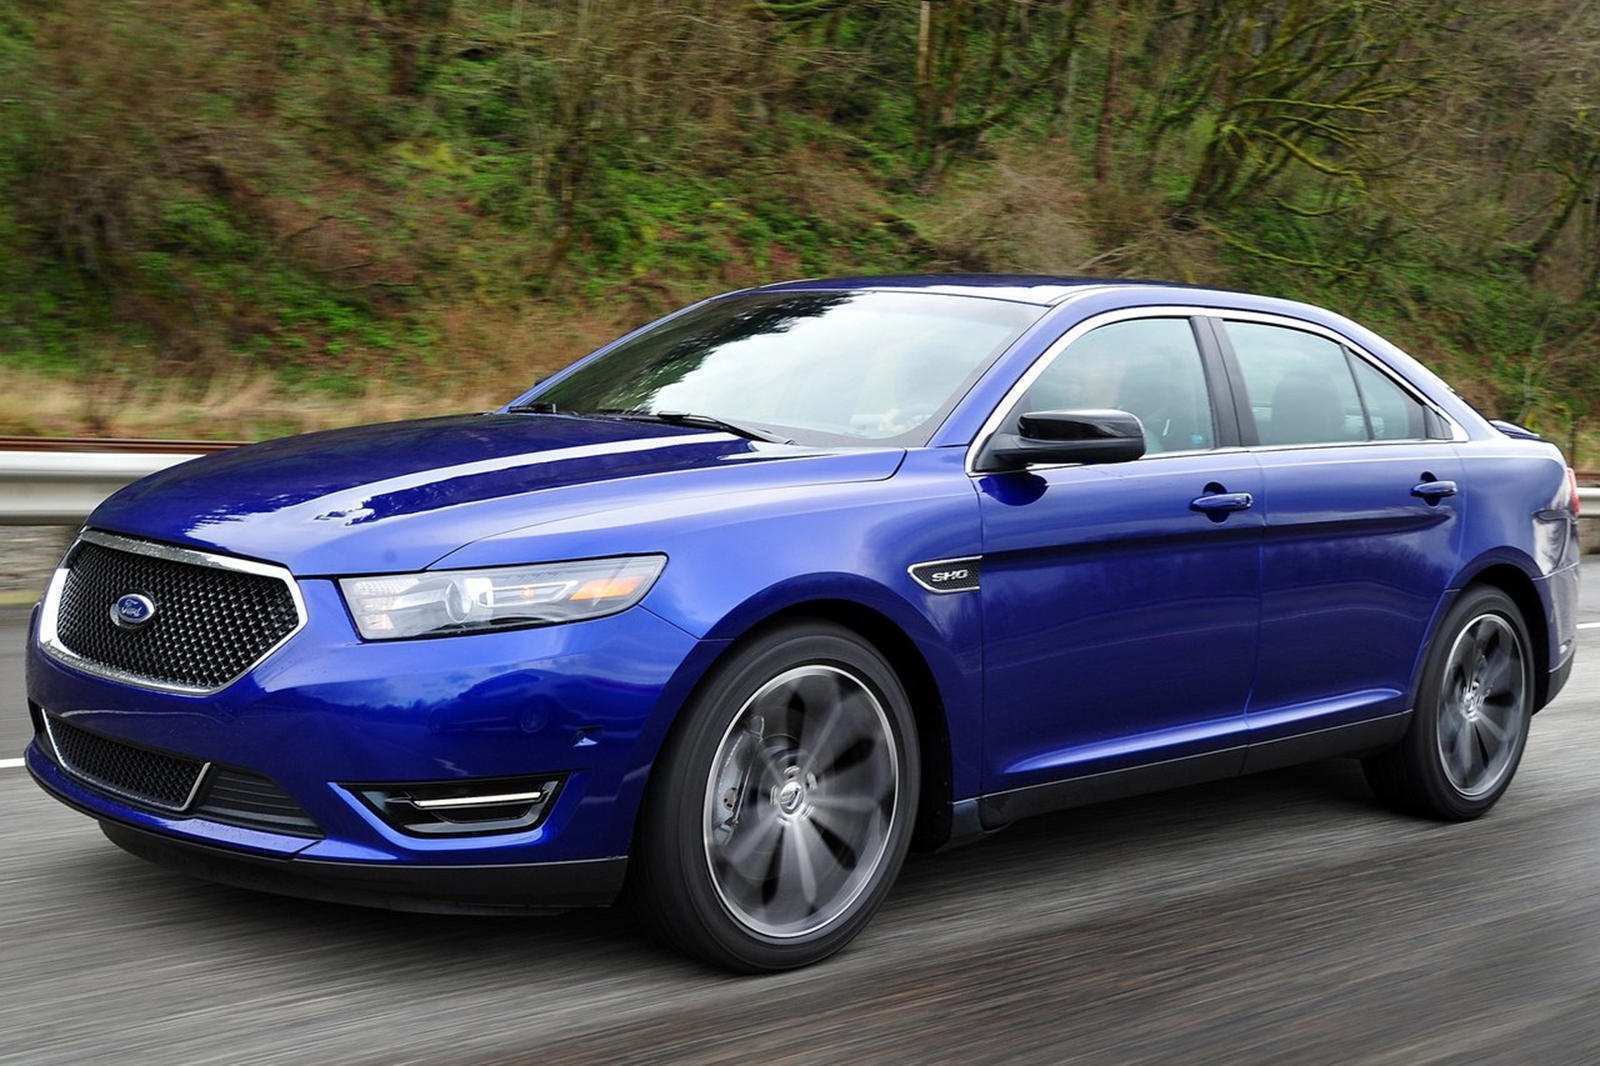 82 The 2019 Ford Taurus Sho Overview